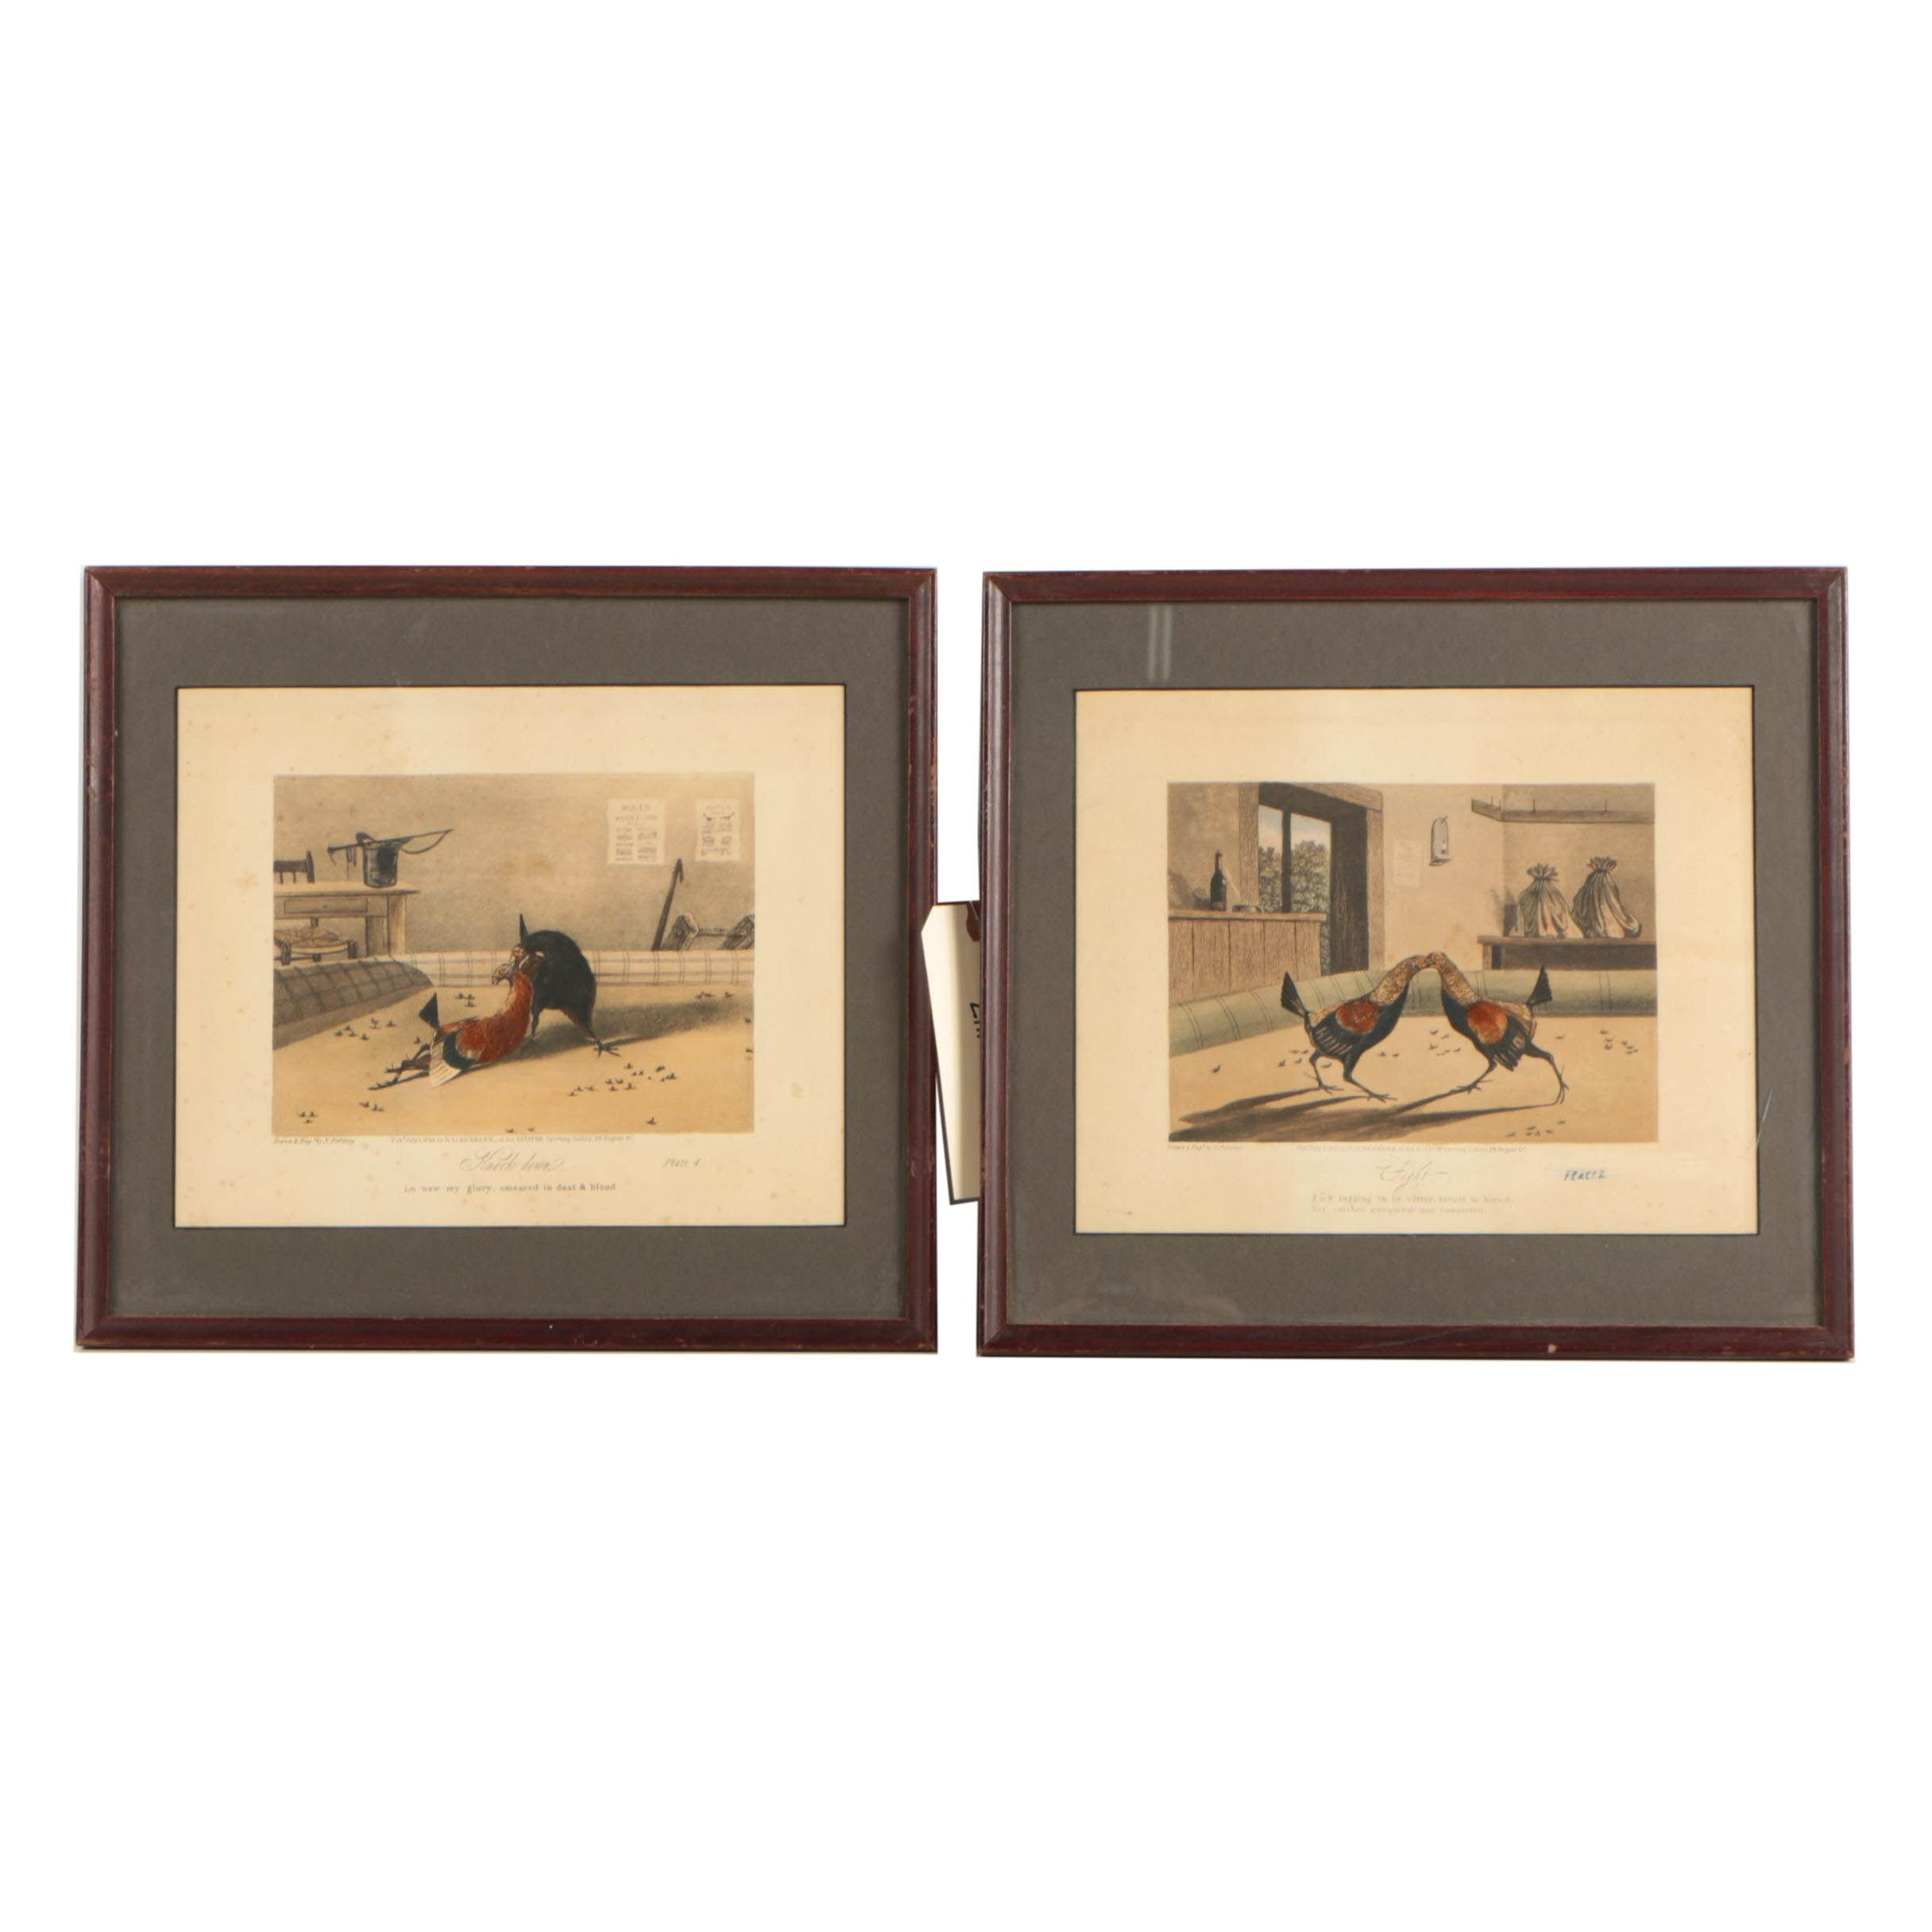 "Hand Colored Collotype Prints ""Knockdown"" and ""Fight"" after N. Fielding"